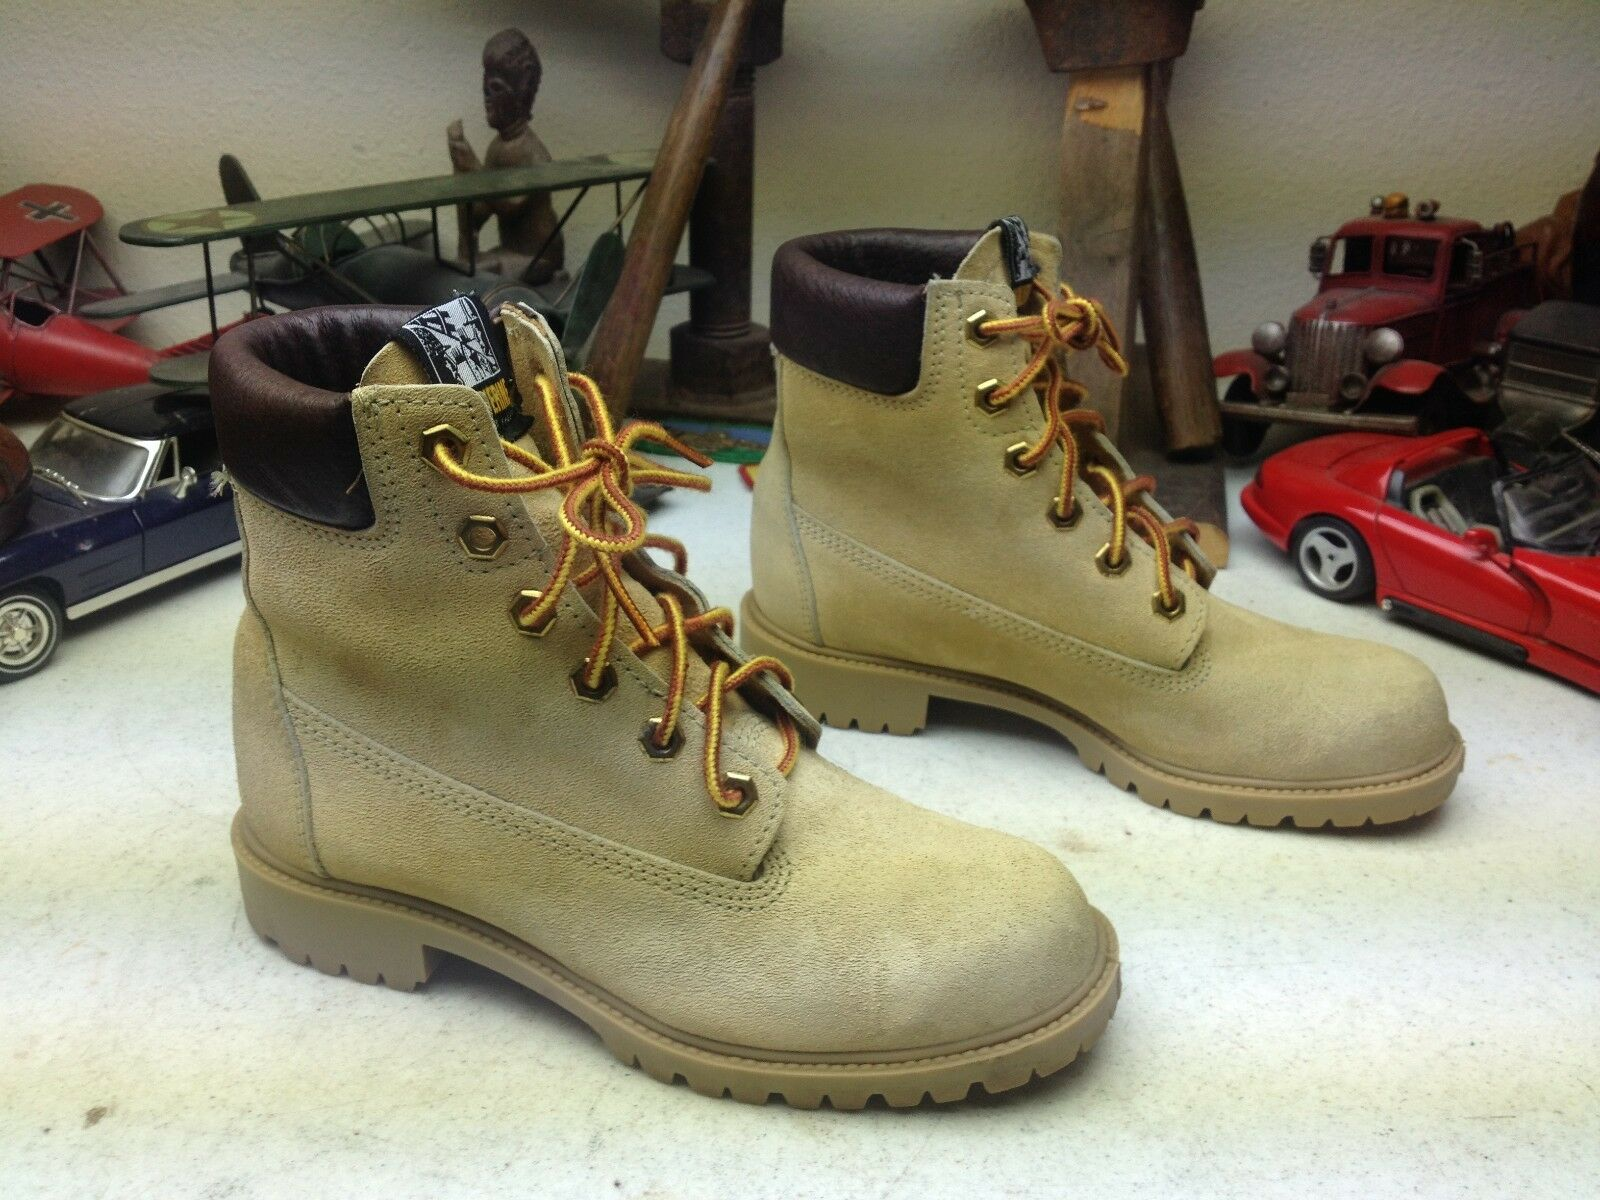 WOLVERINE VINTAGE USA USA USA AMBER LACE UP PACKER WORK CHORE FARM BOOTS 5-5.5 M 6d7d23